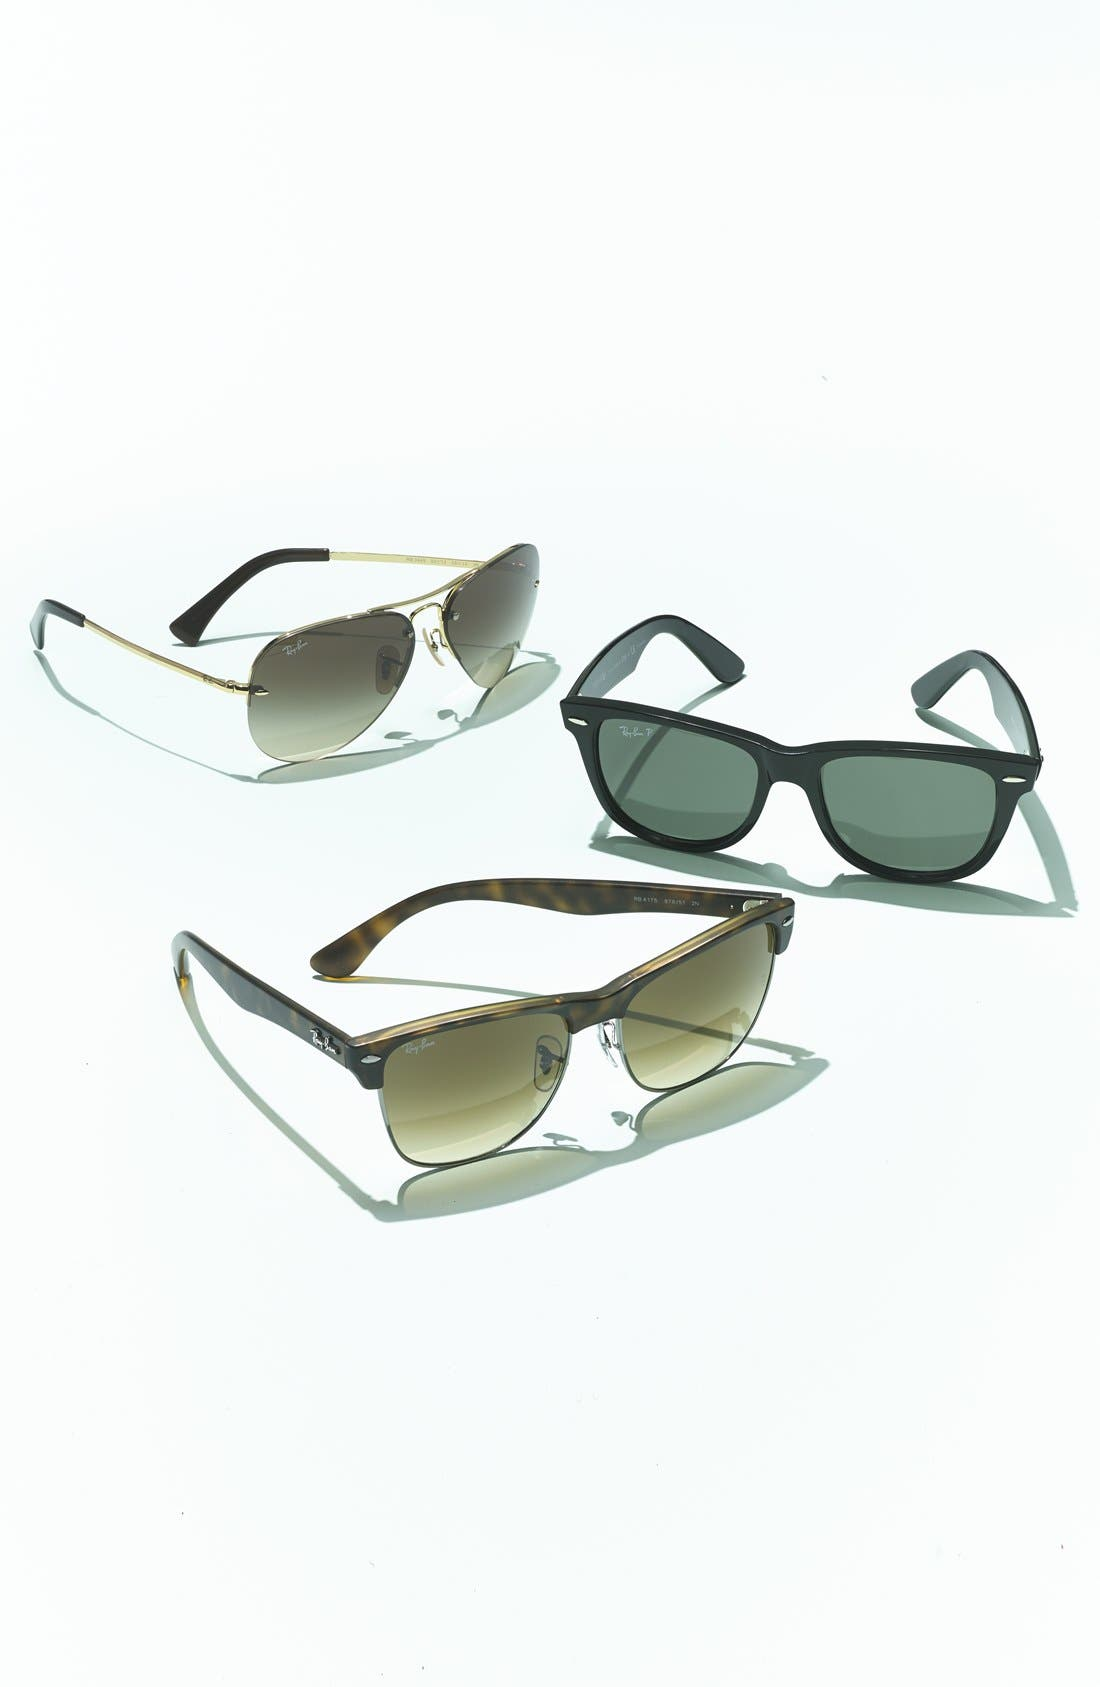 Highstreet 57mm Sunglasses,                             Alternate thumbnail 4, color,                             DEMI BLACK/ GREEN SOLID